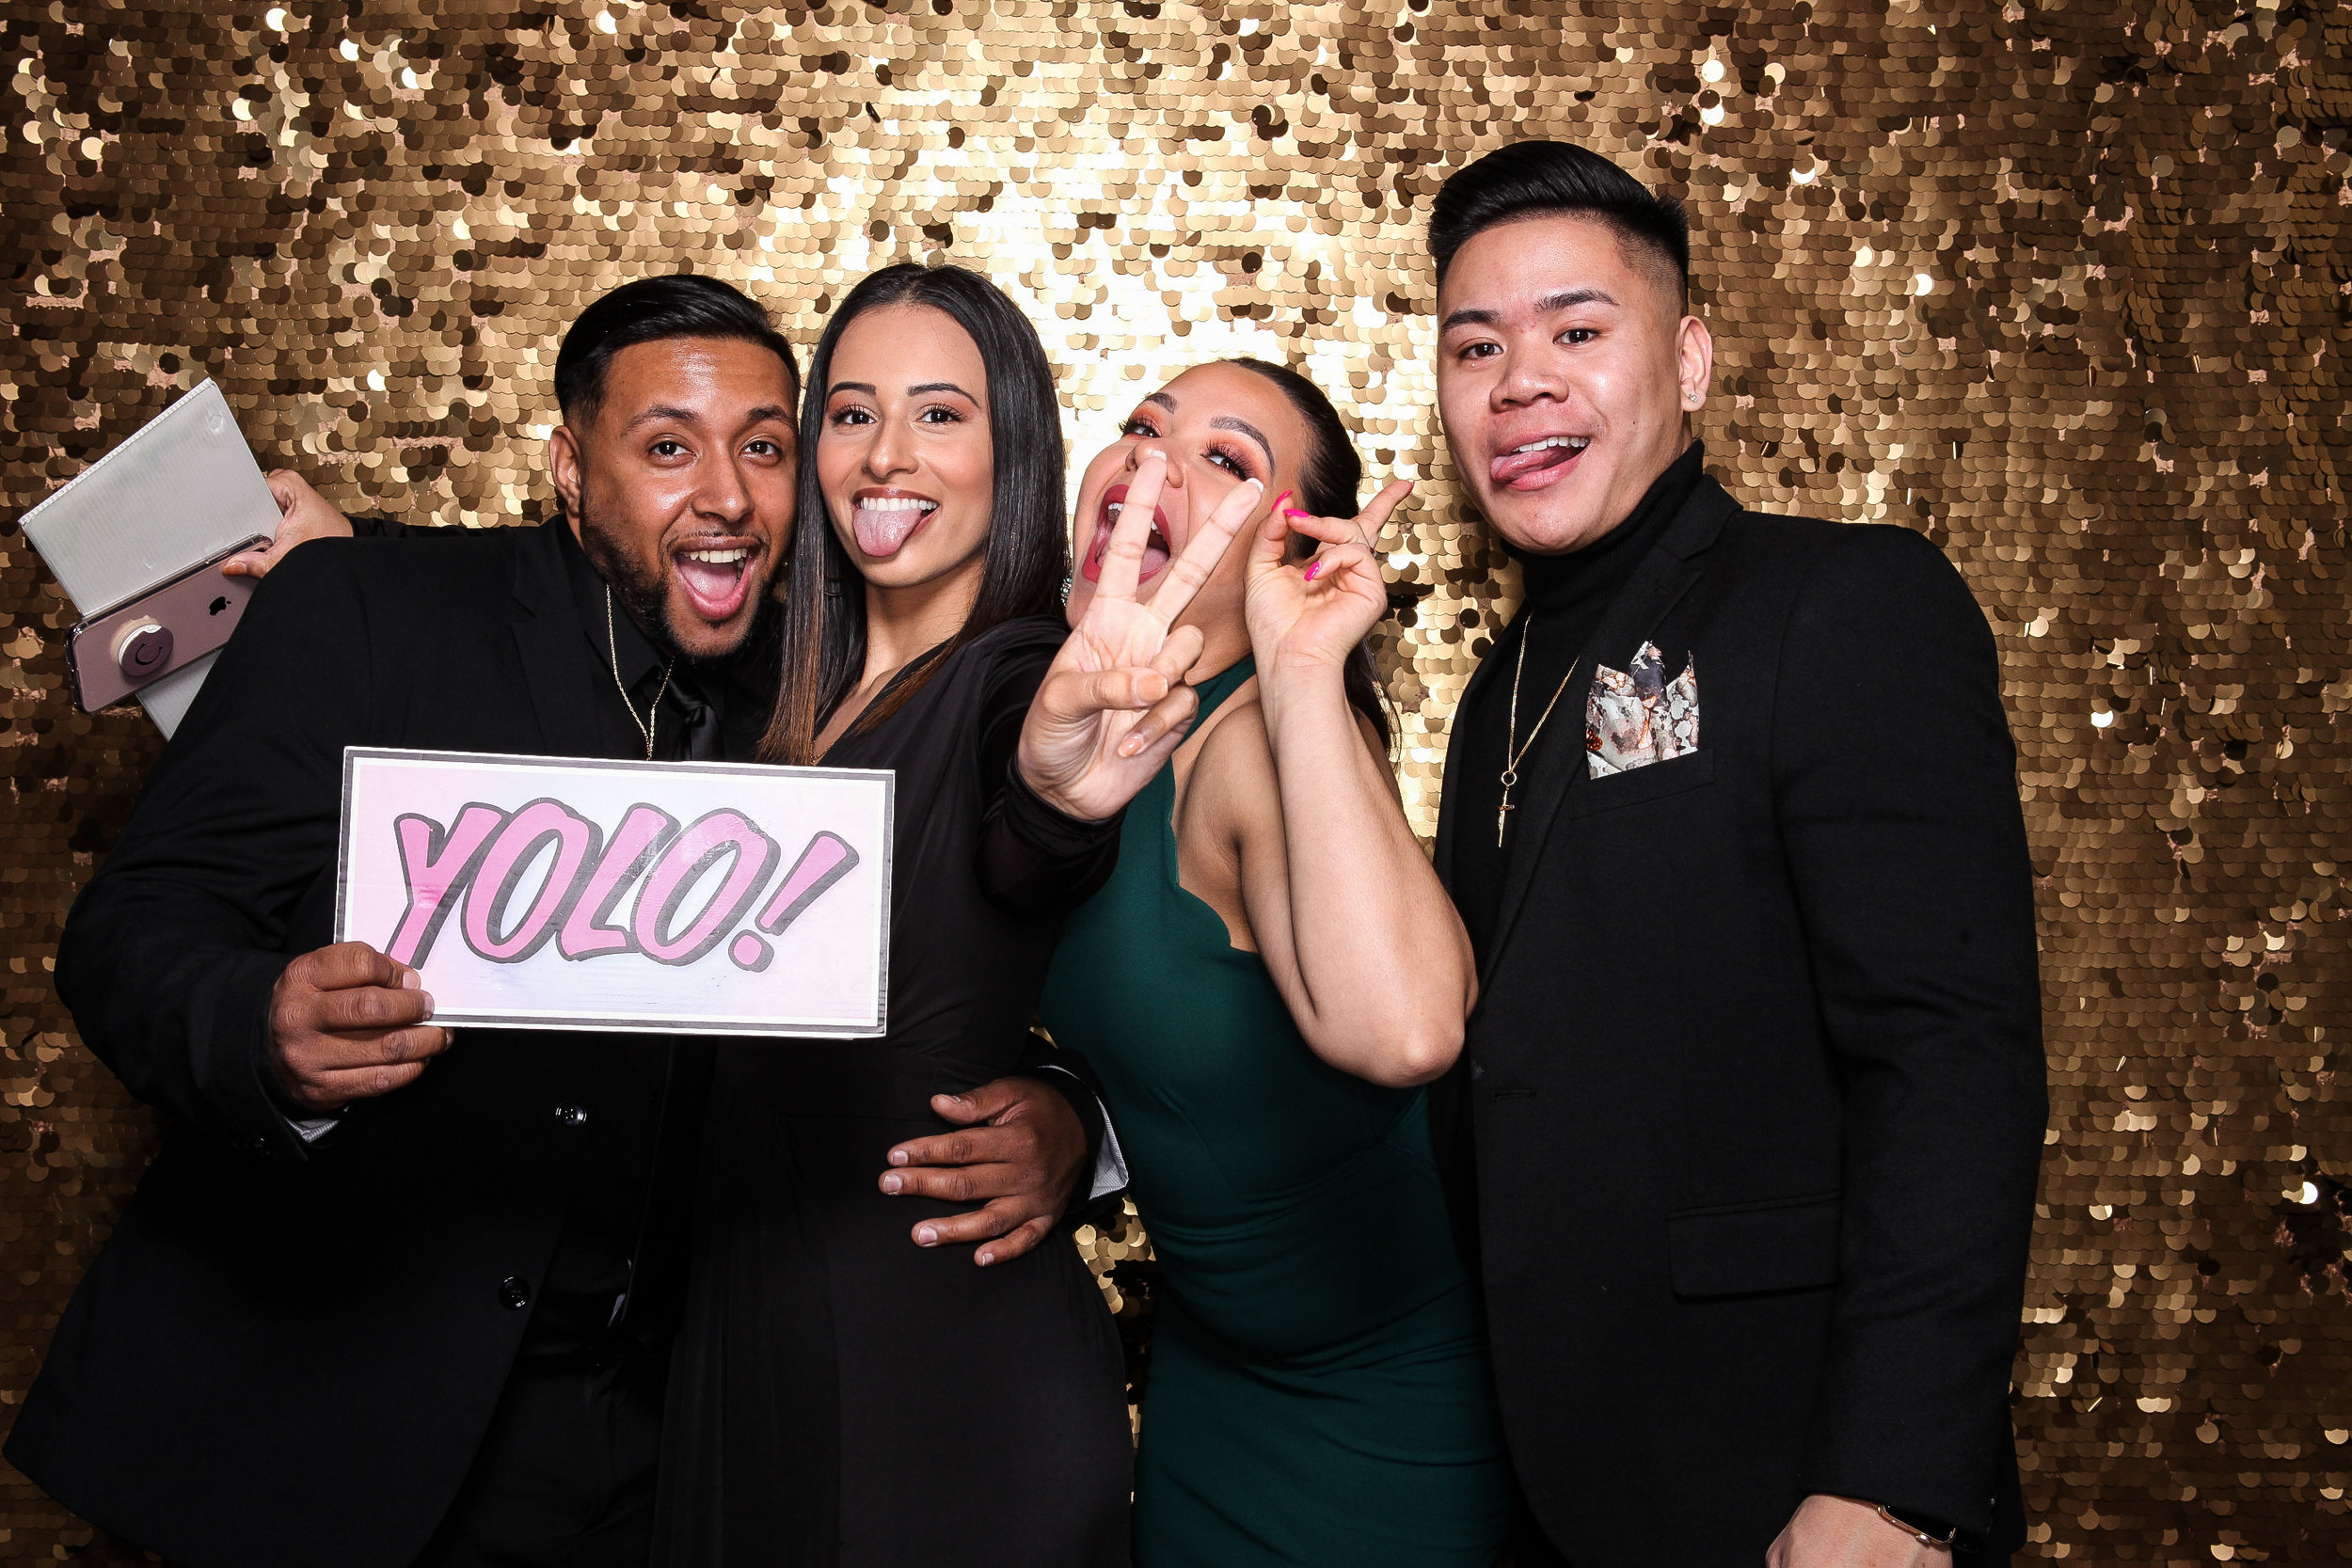 20190503_Adelphi_Senior_Formal-139.jpg